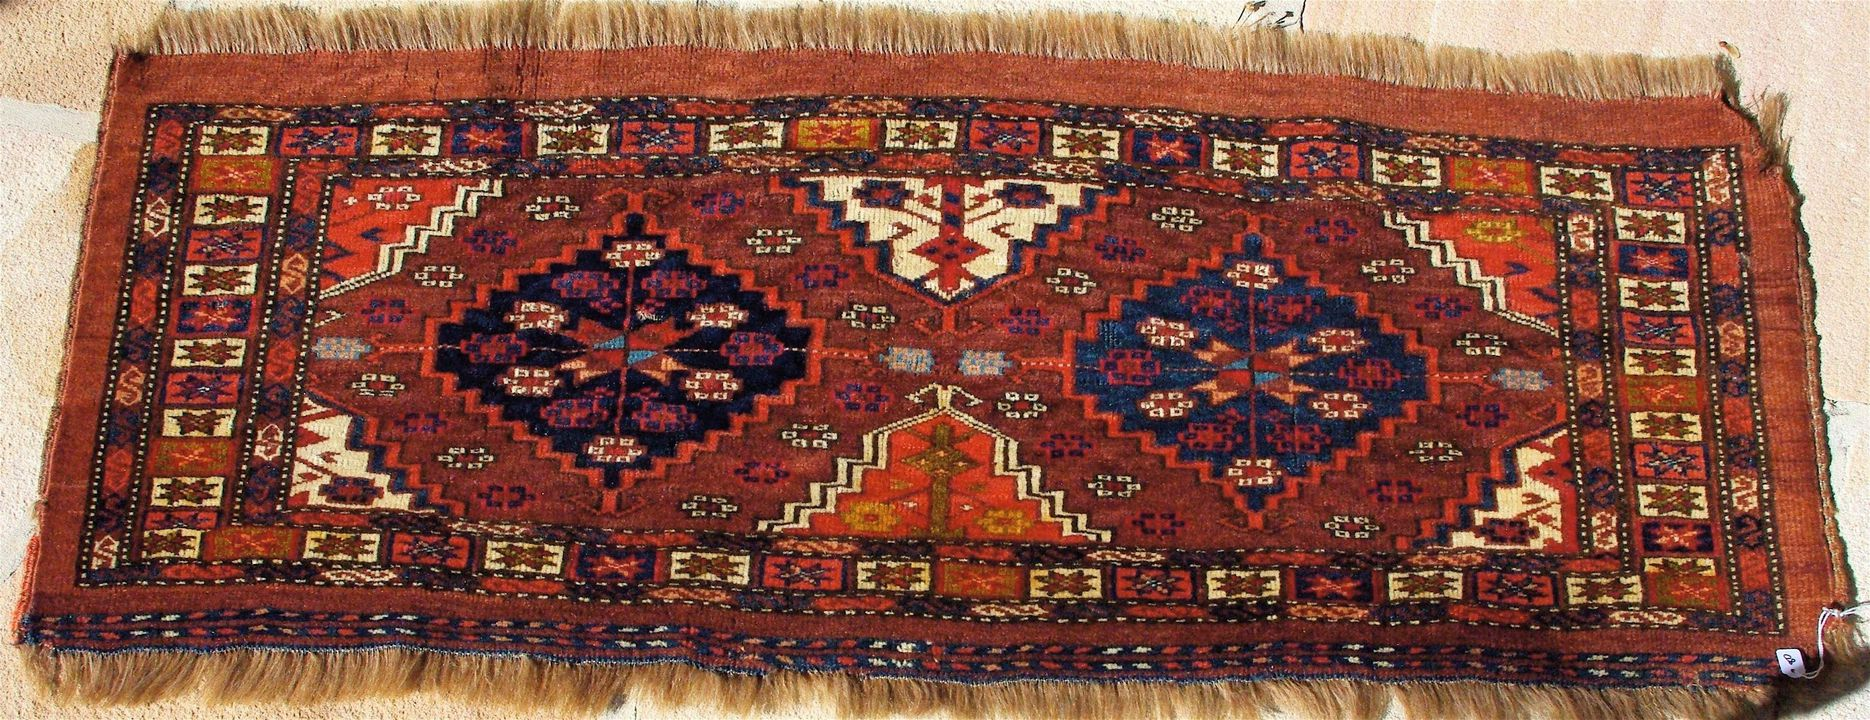 2015/26/50 Storage bag (torba) face, Chodor design, symmetrically knotted wool pile, probably made by Yomut Turkmen women, Turkmenistan, late 1800s. Click to enlarge.